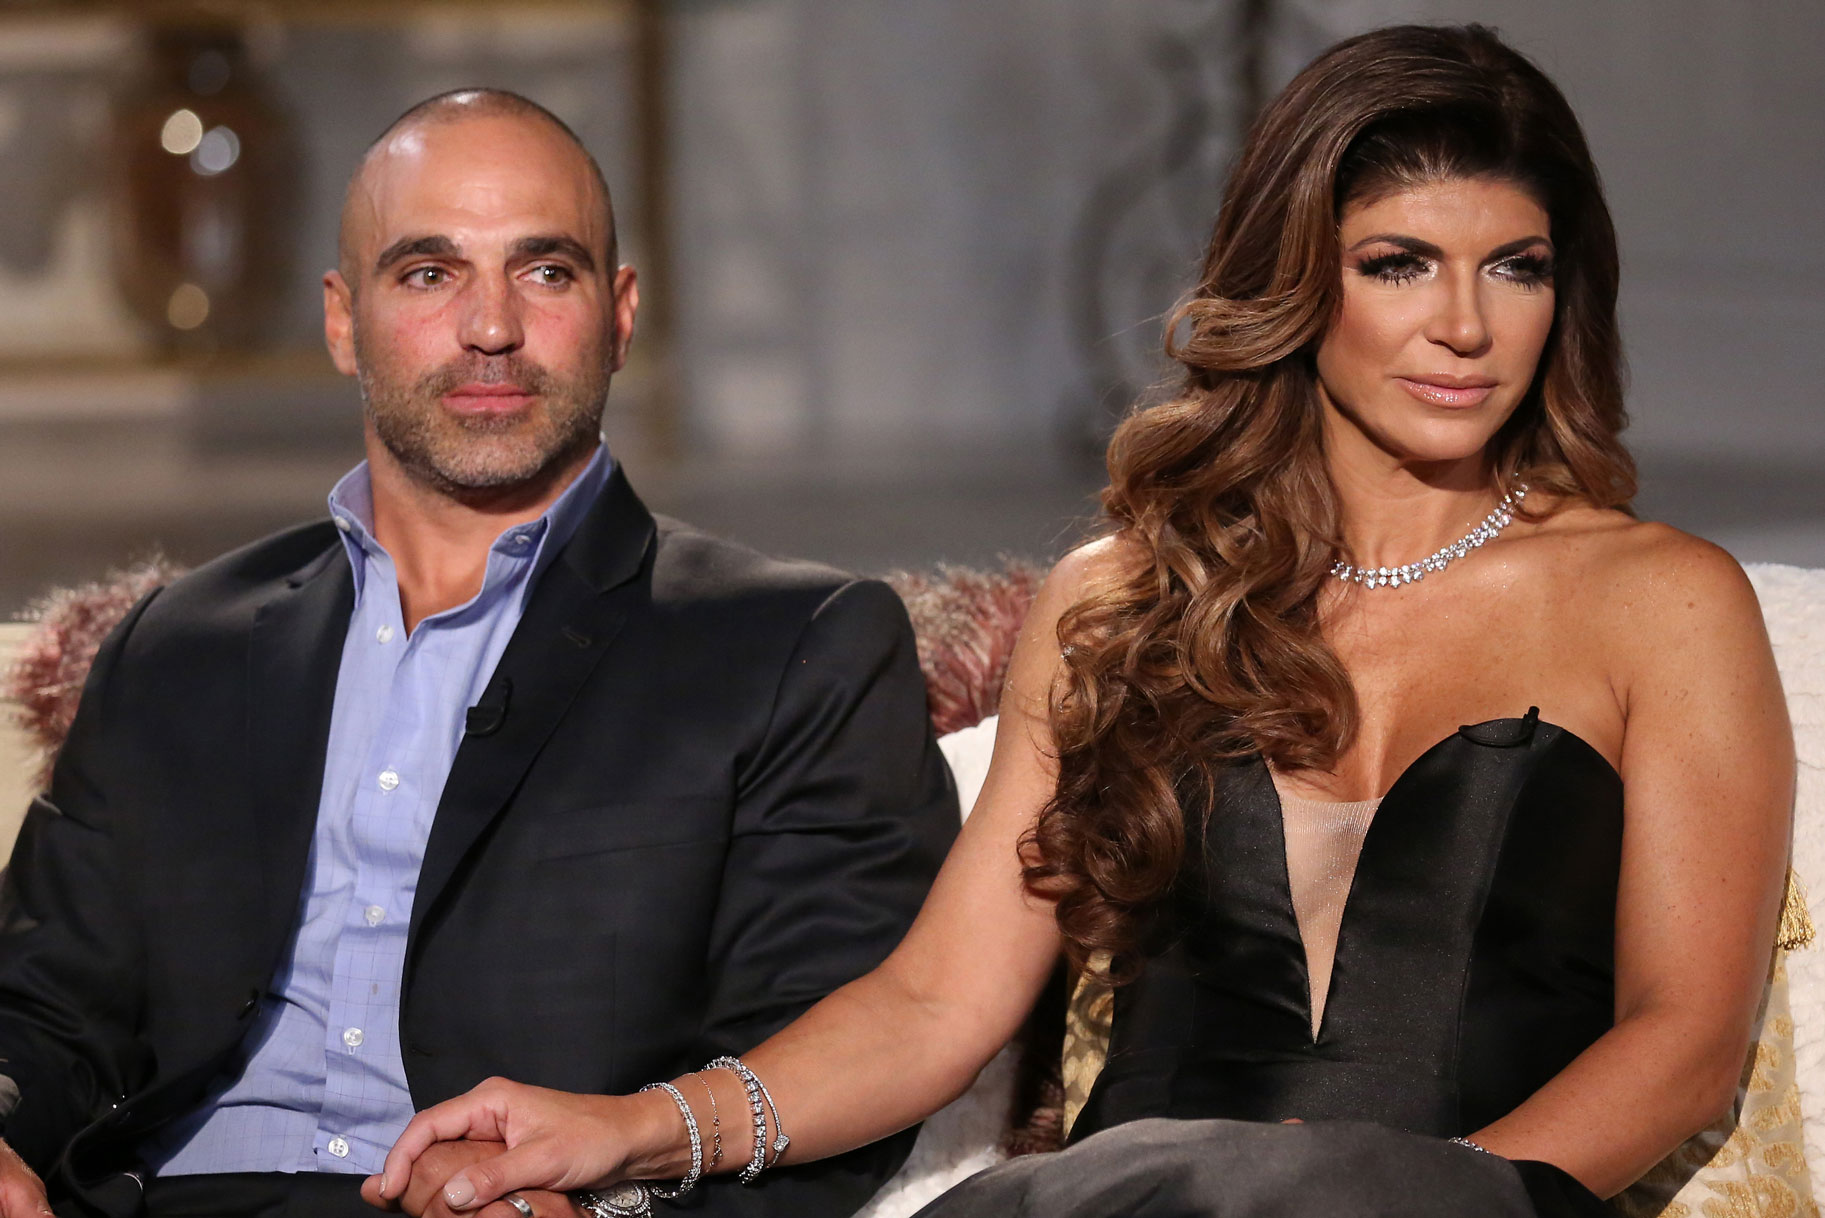 Teresa Giudice and Joe Gorga